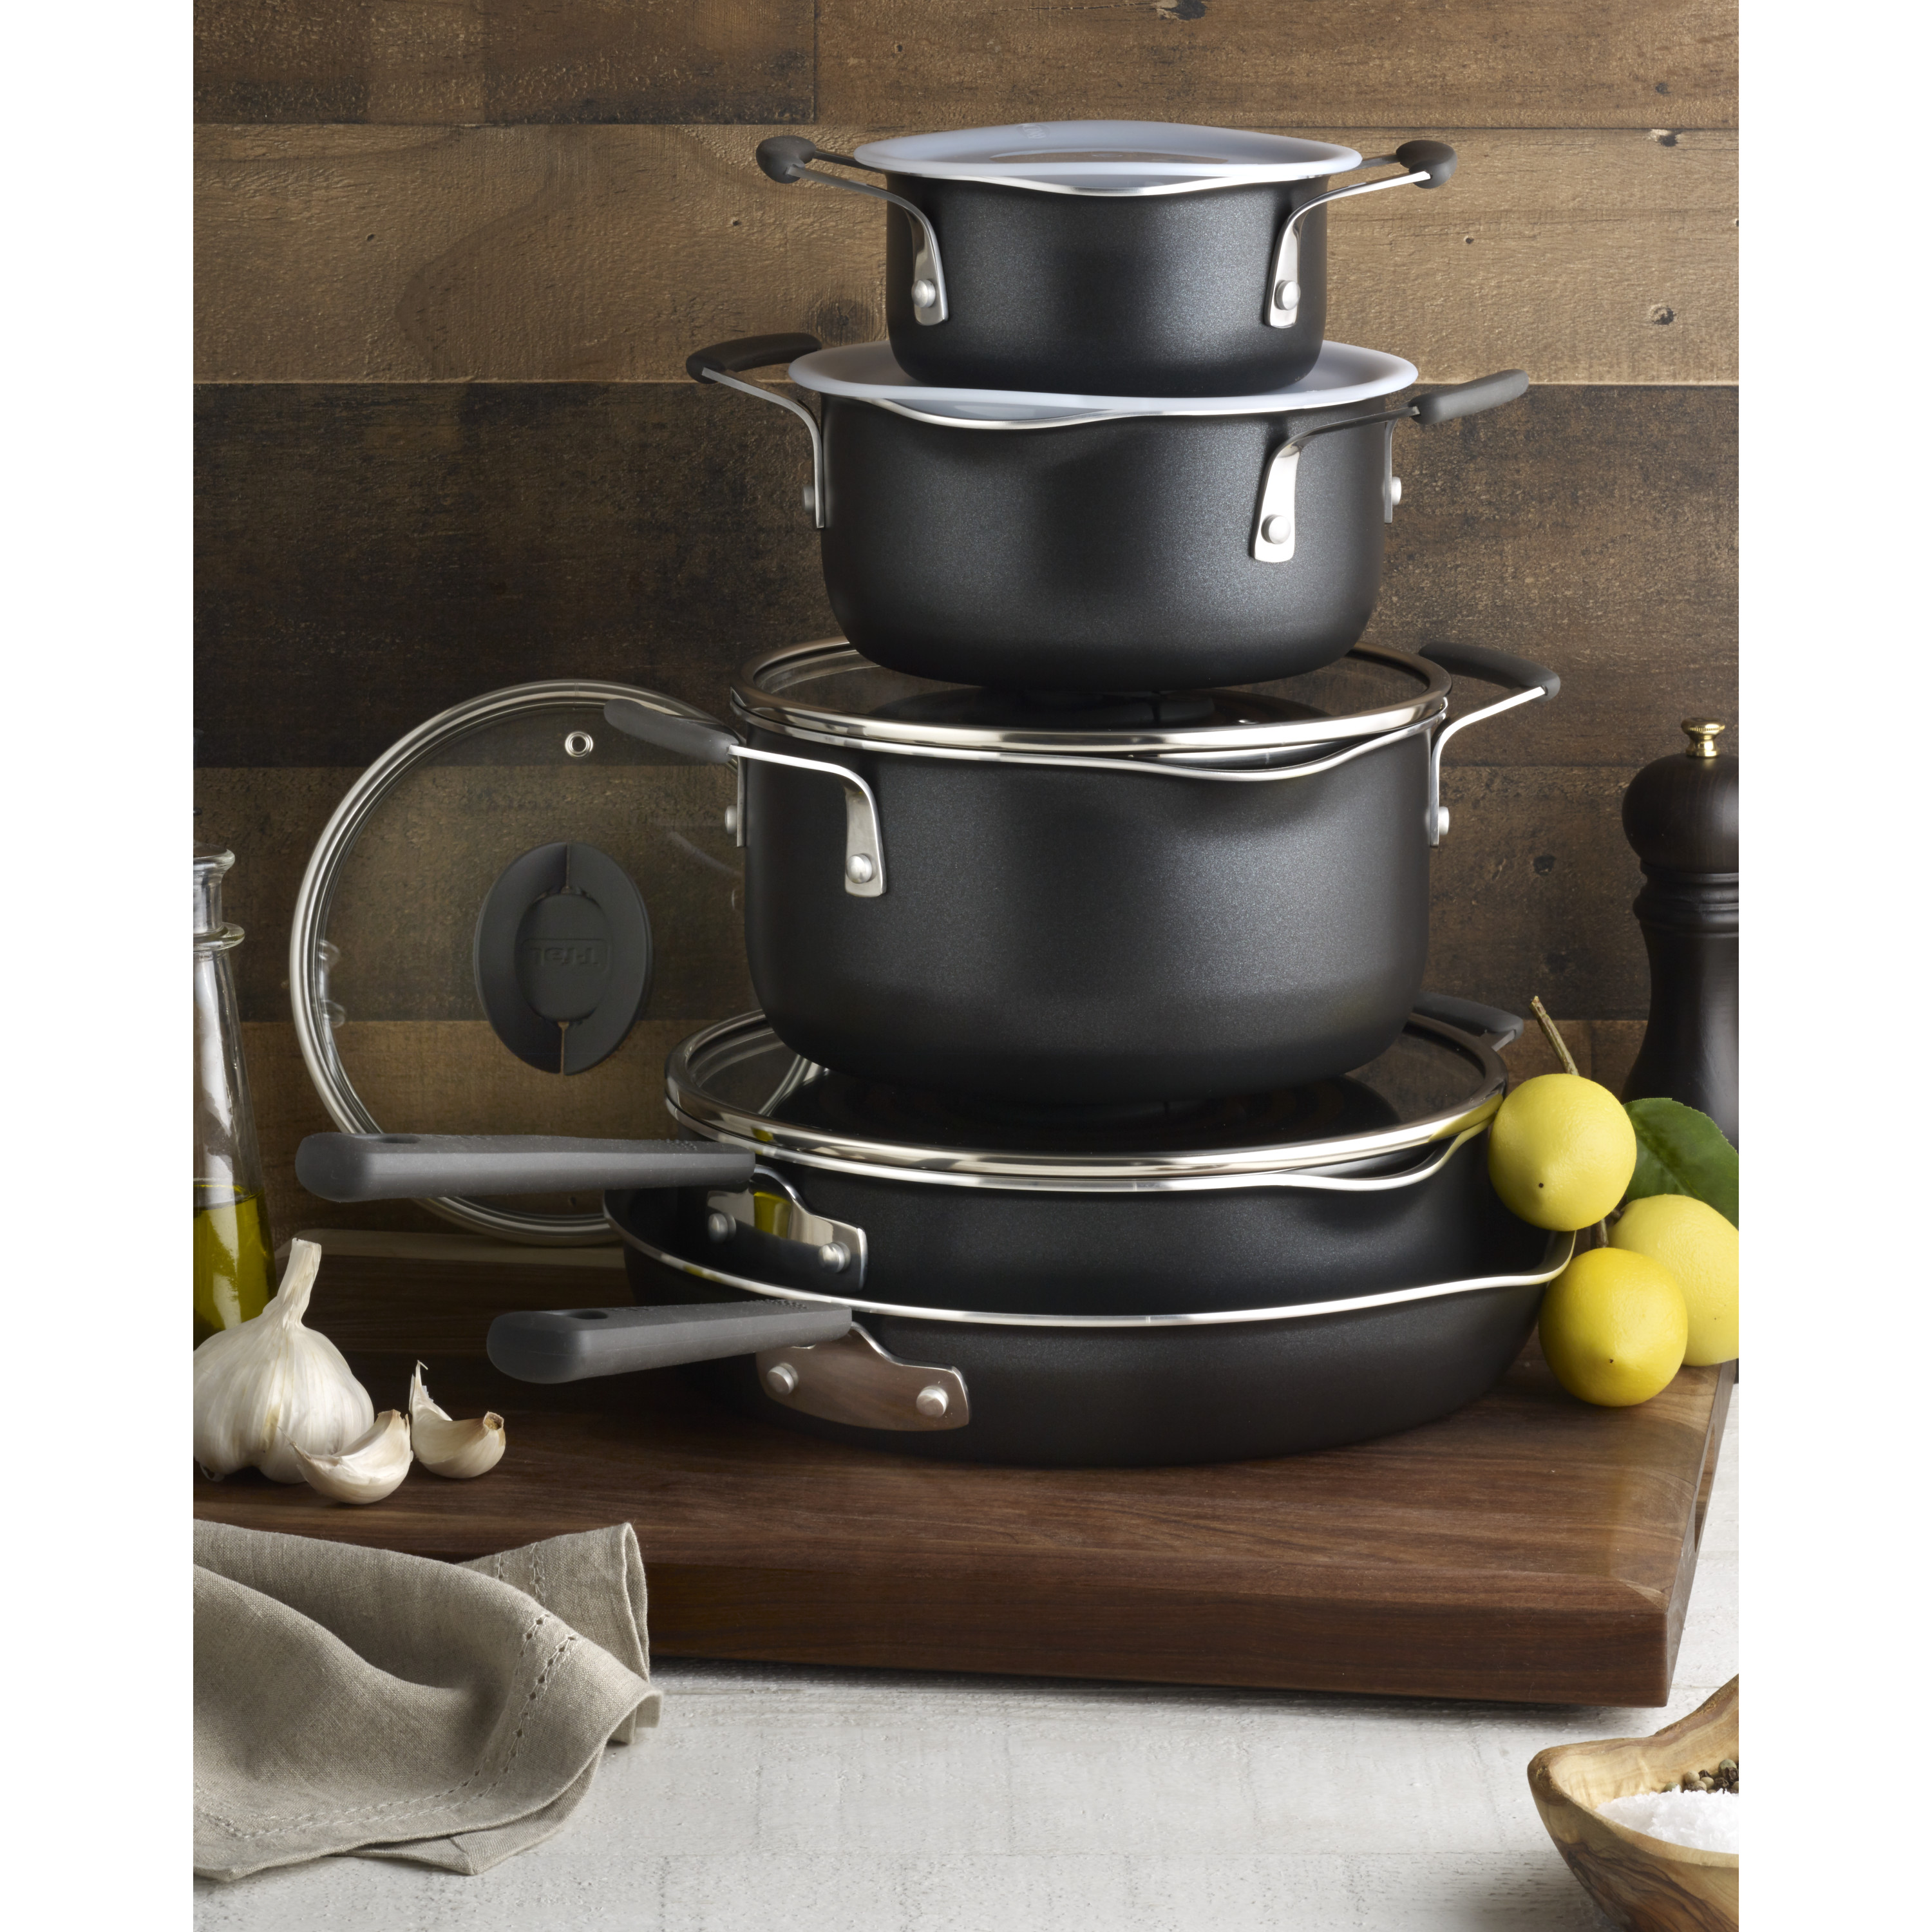 T-fal Stackables Titanium Non-Stick Multipurpose Space Saving Black Nesting Cookware Set, 10 Piece